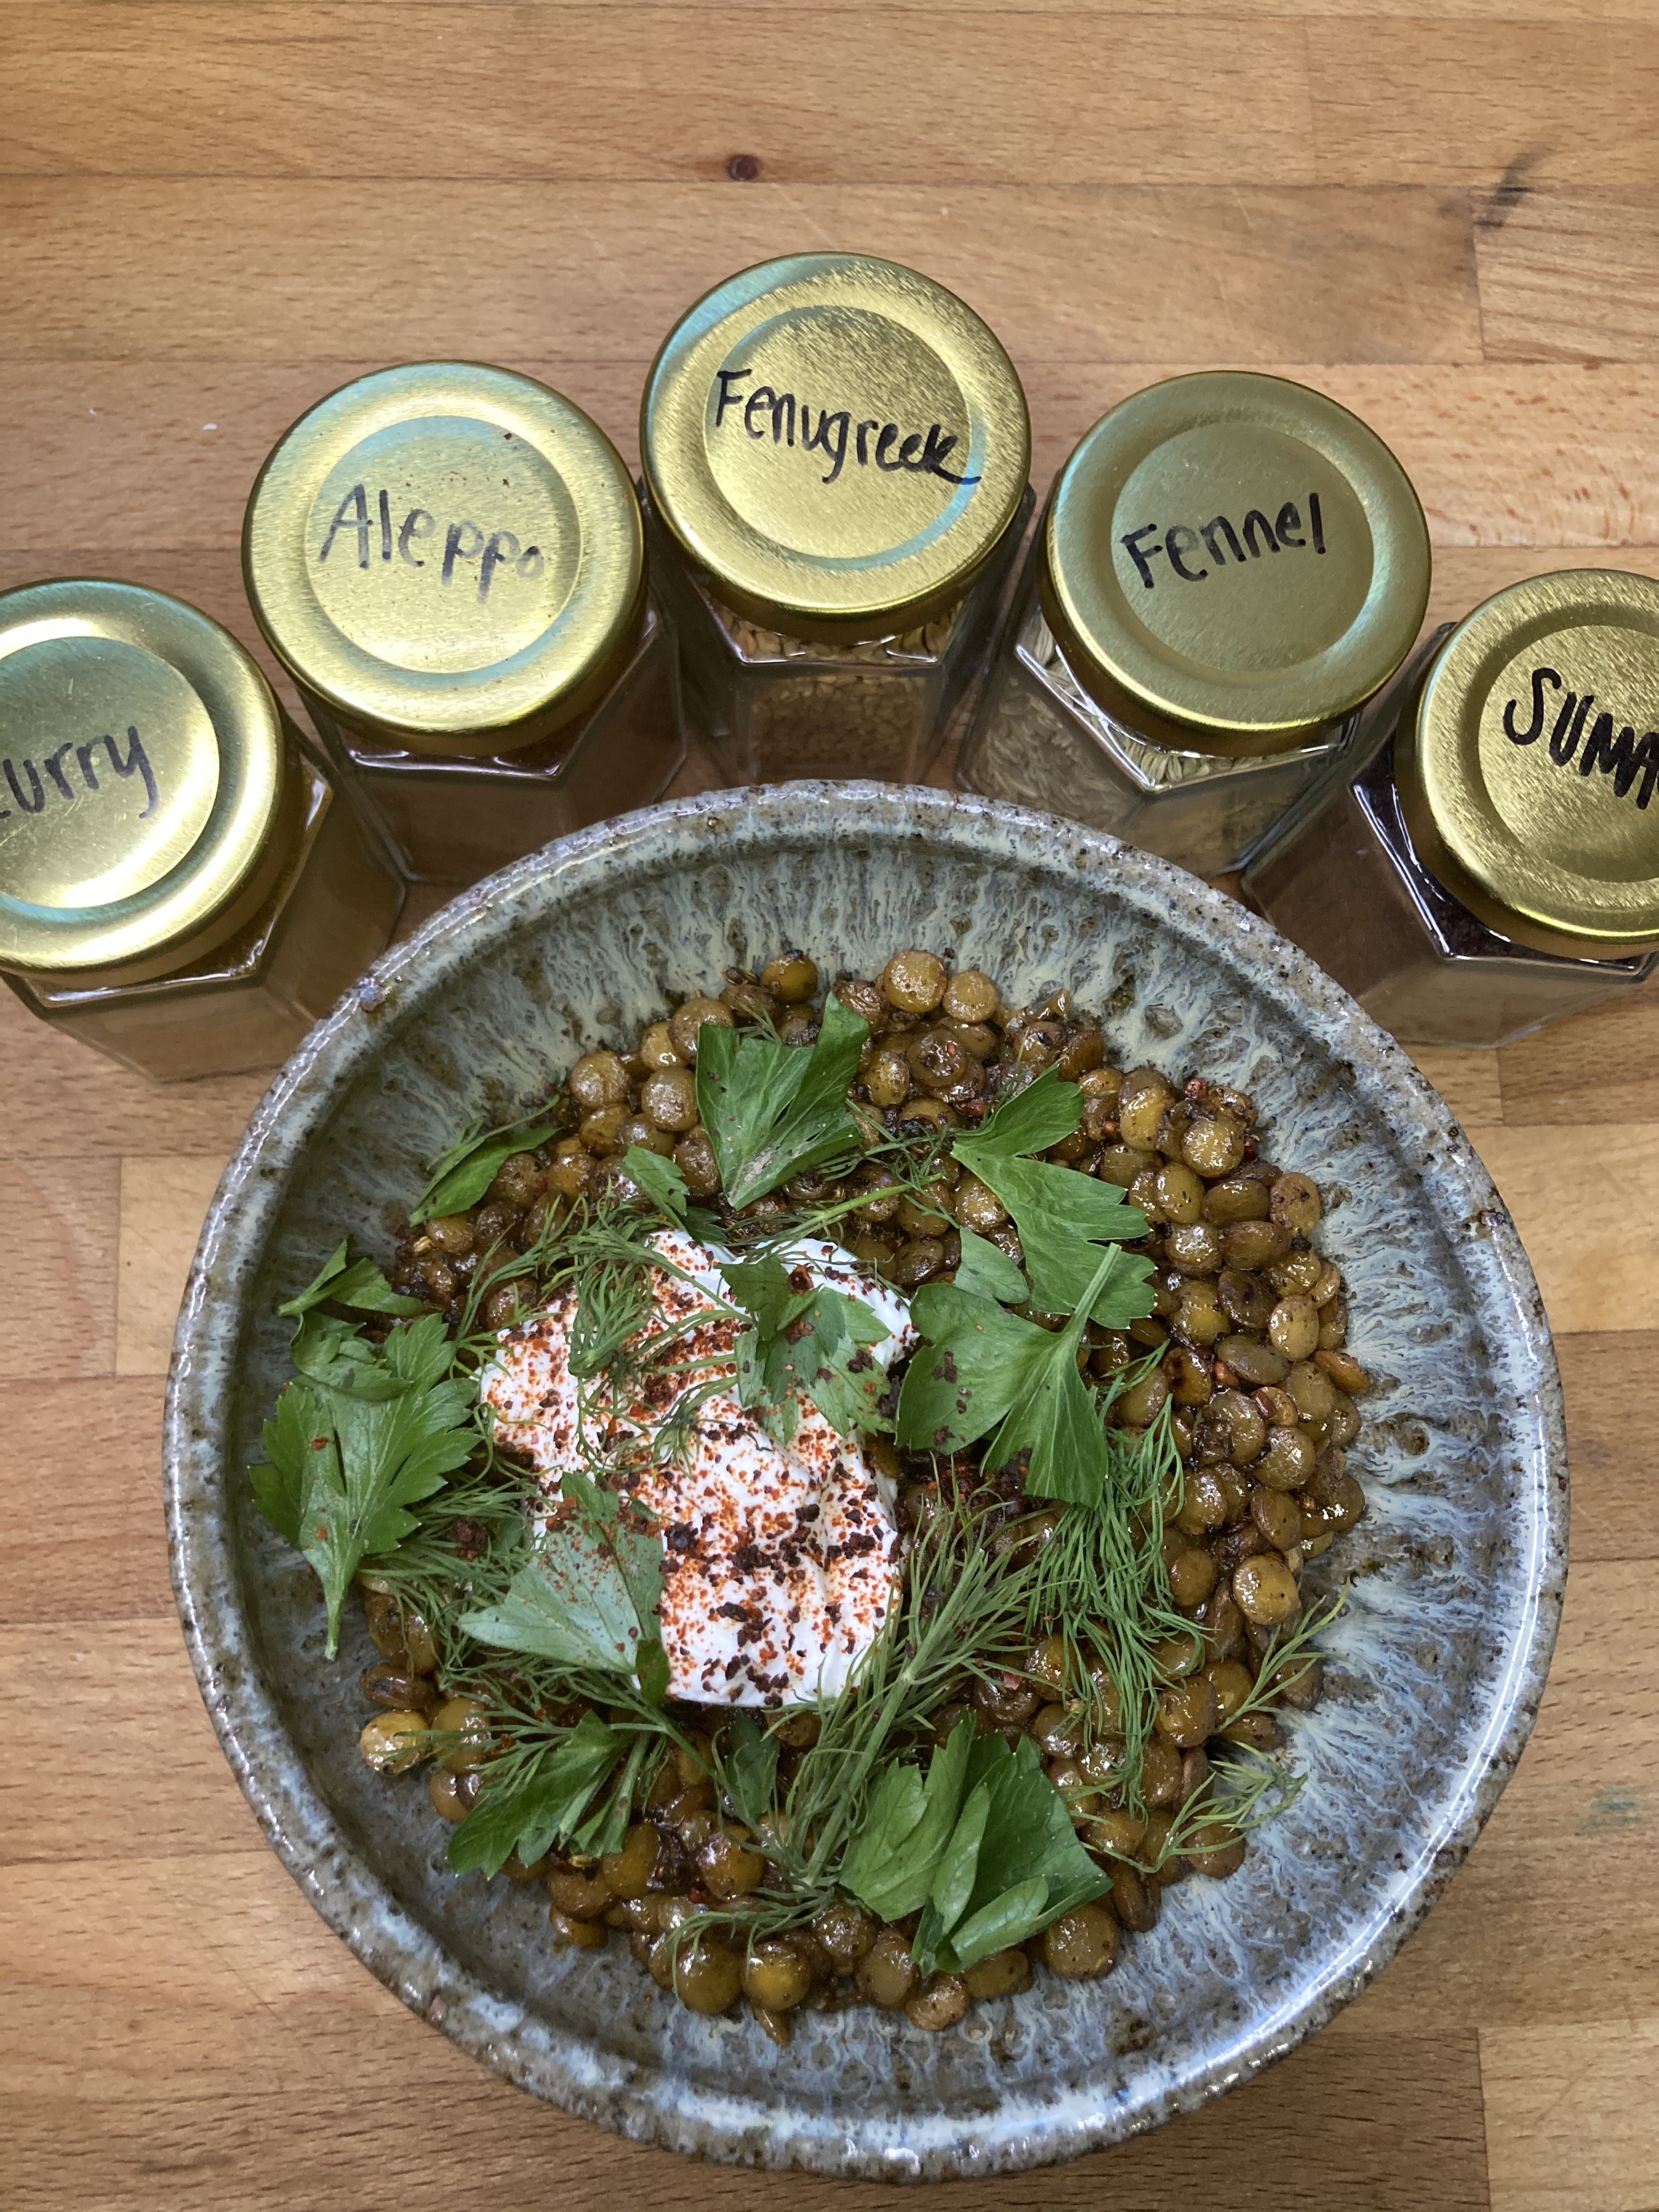 Hearty bowl of lentils with yogurt, dill and parsley, ringed by an assortment of spices in jars